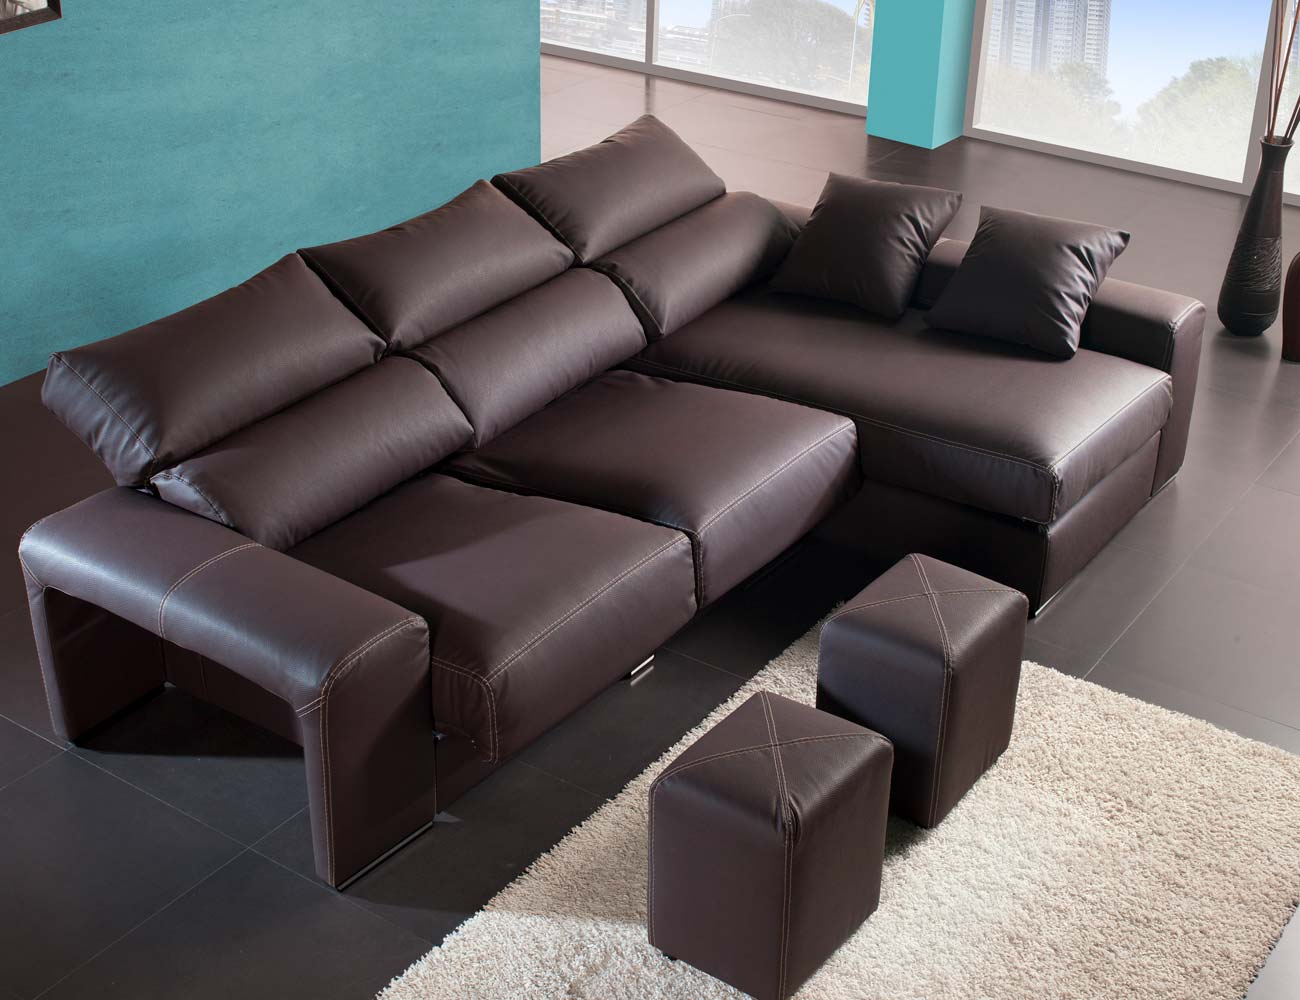 Sofa chaiselongue moderno polipiel chocolate poufs taburetes10